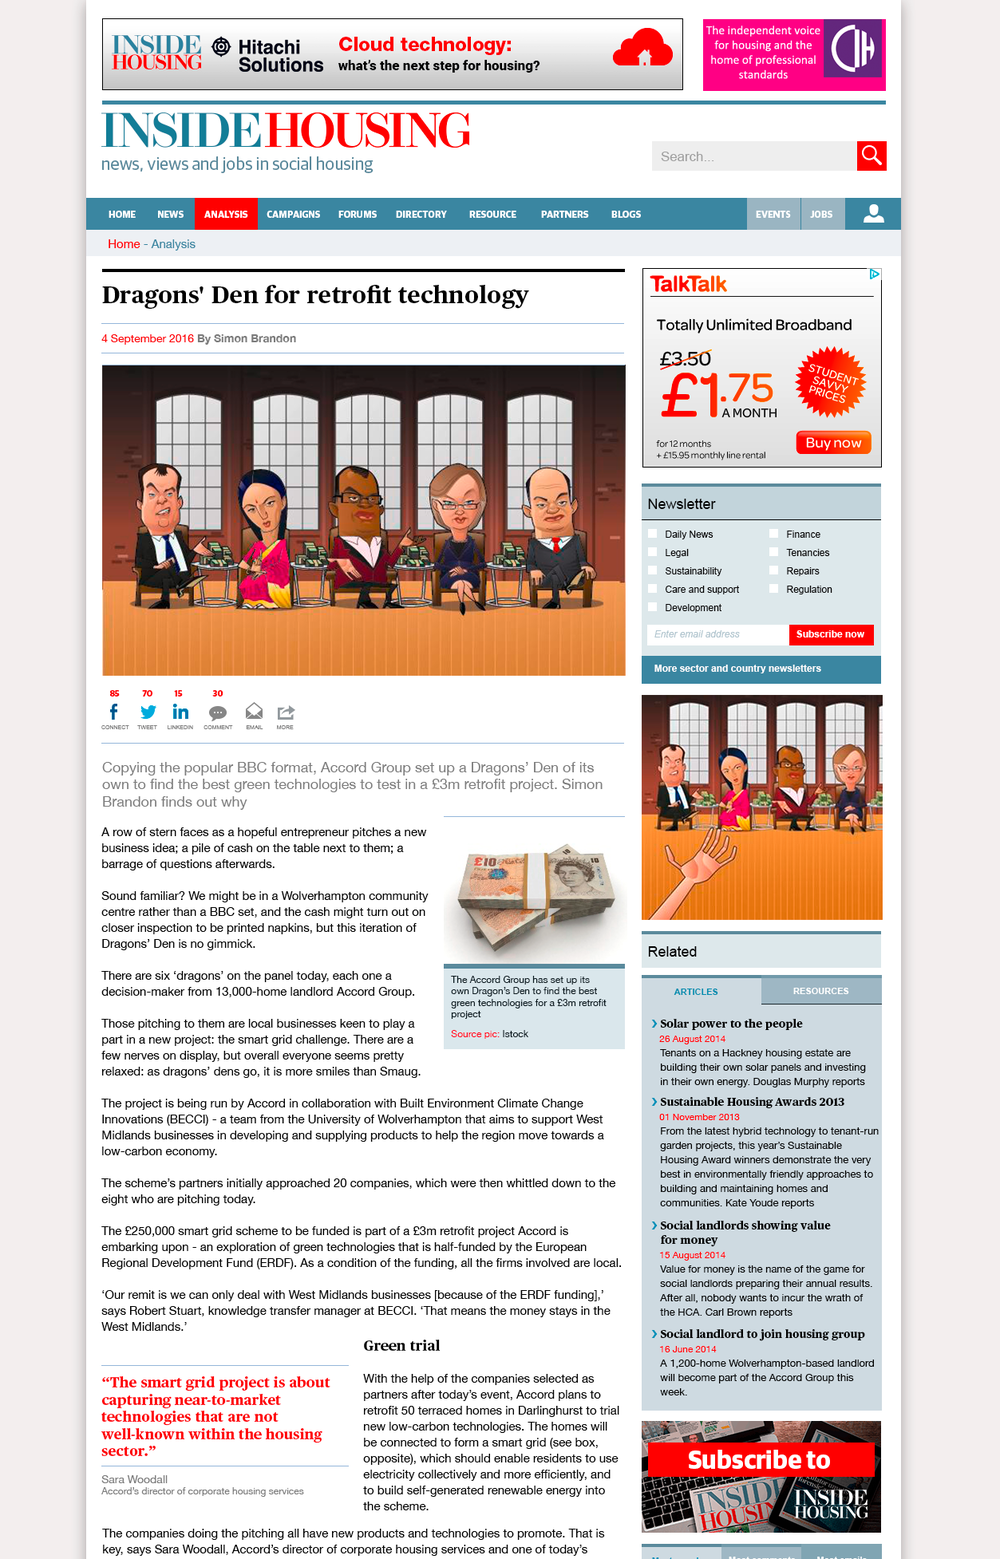 Article page showing improved typography.